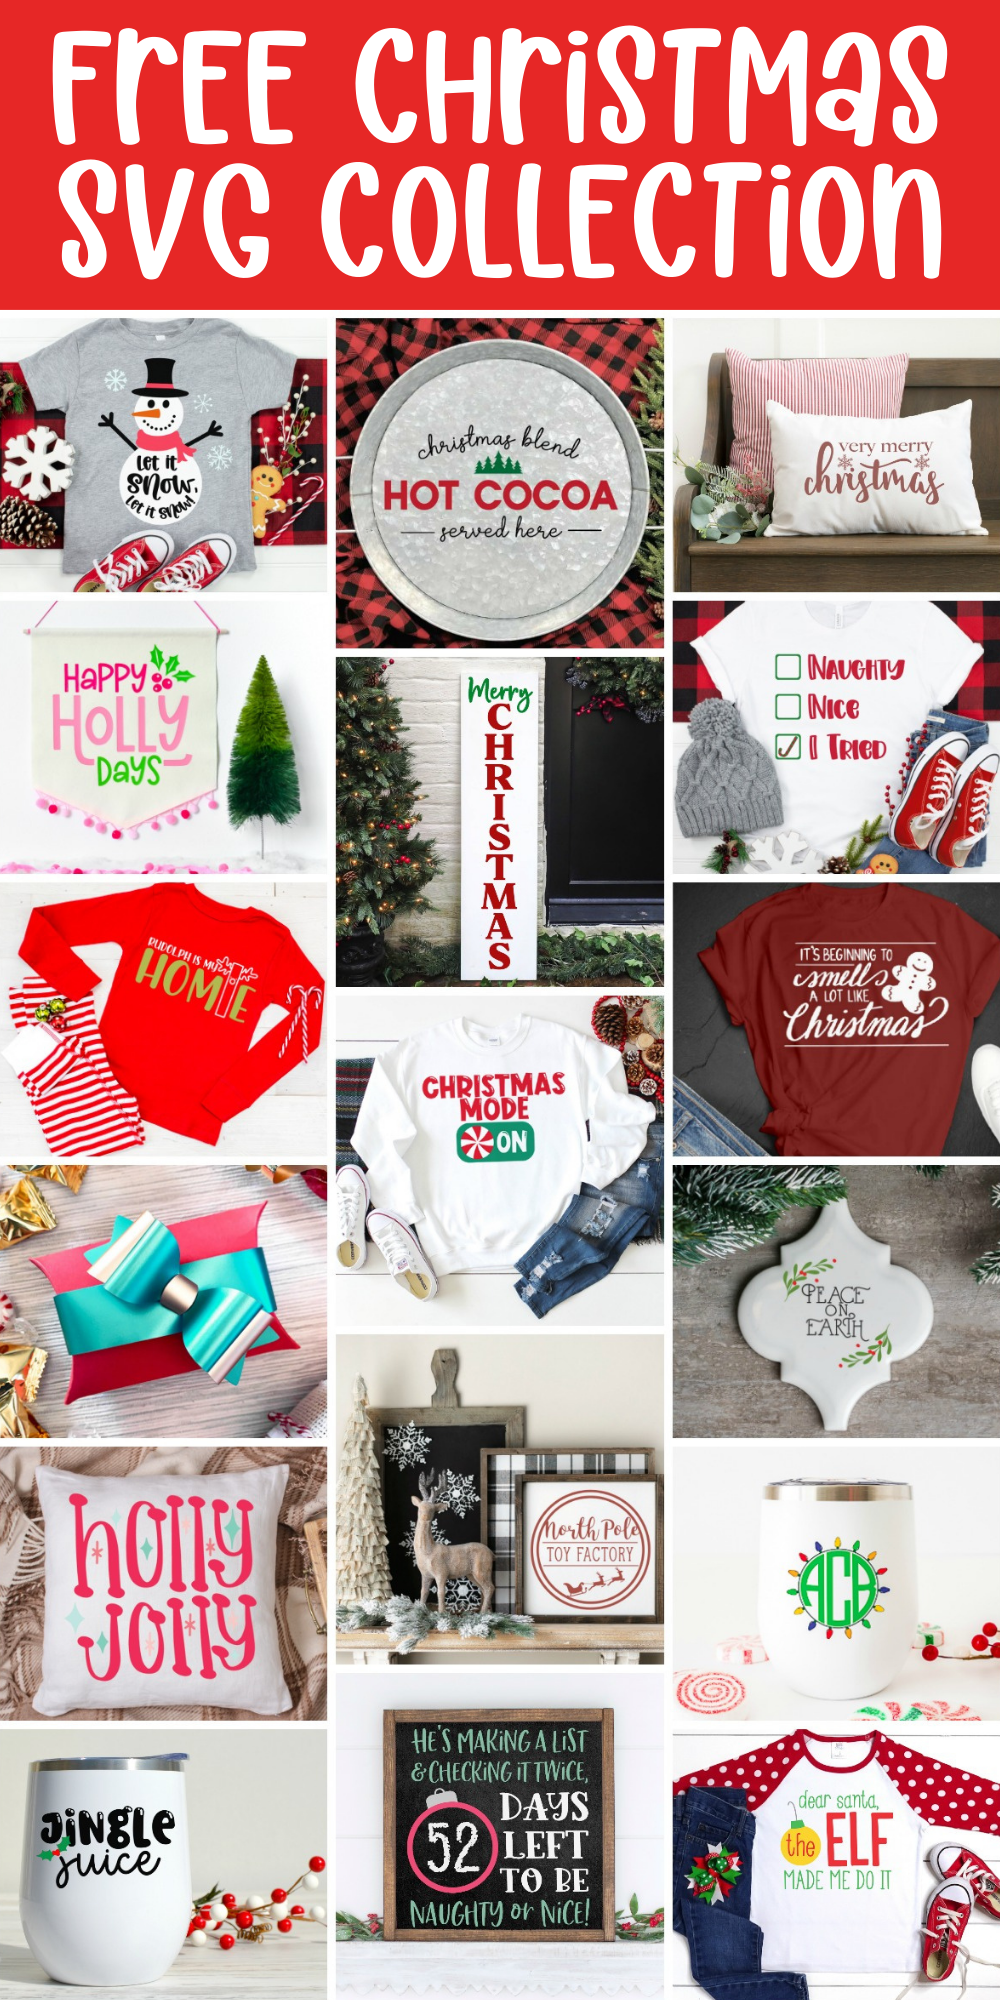 https://www.happygoluckyblog.com/wp-content/uploads/2020/11/Free-Christmas-SVG-Collection.png